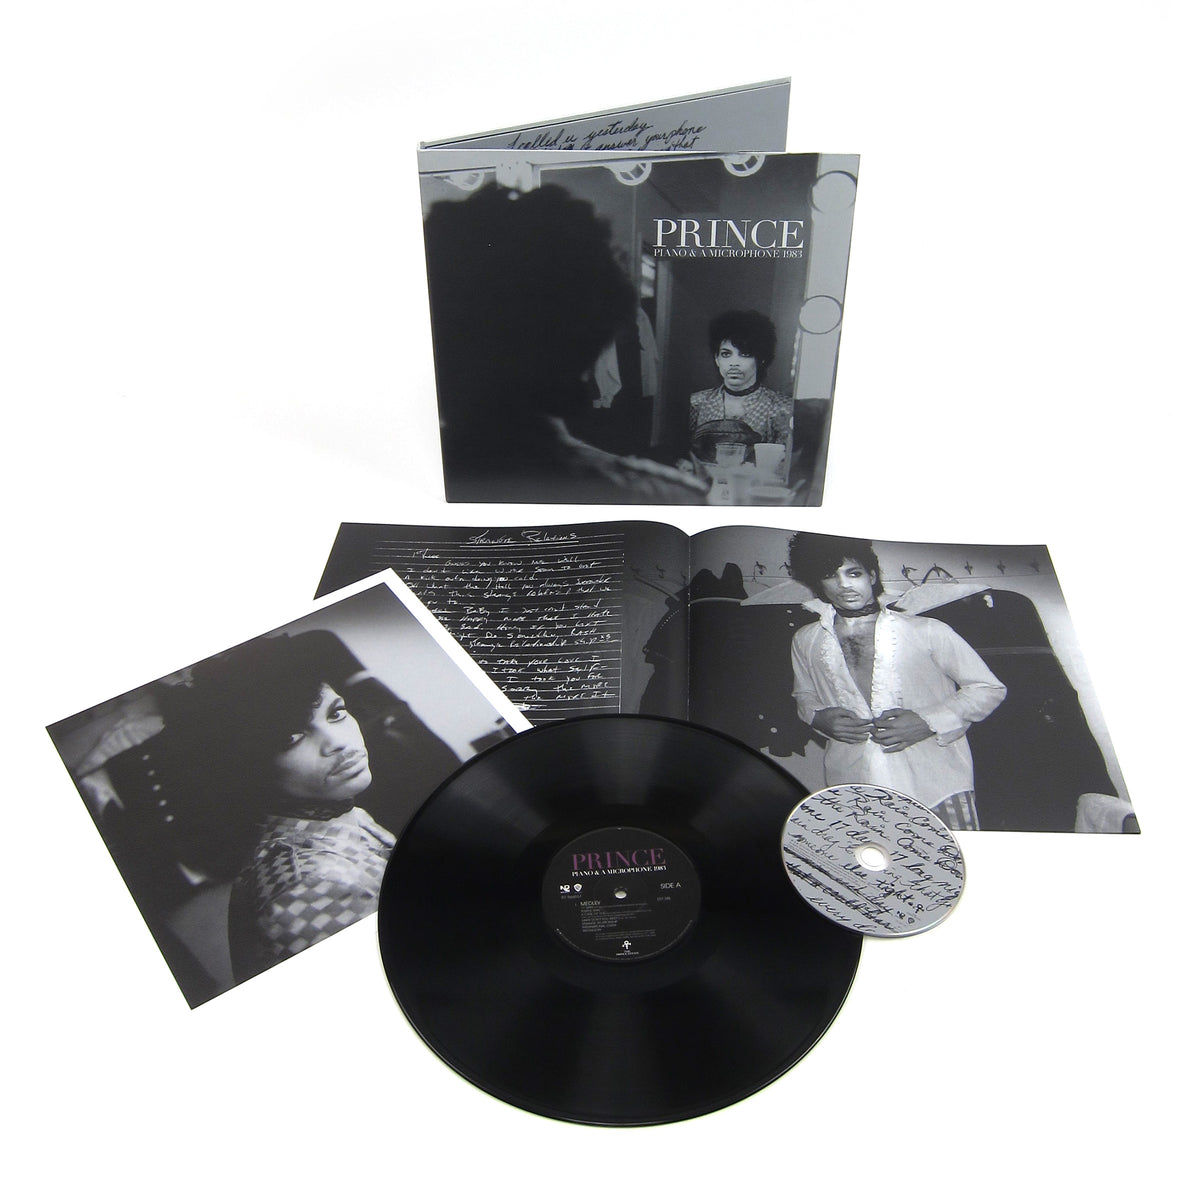 Prince: Piano & A Microphone 1983 Deluxe Edition Vinyl LP+CD